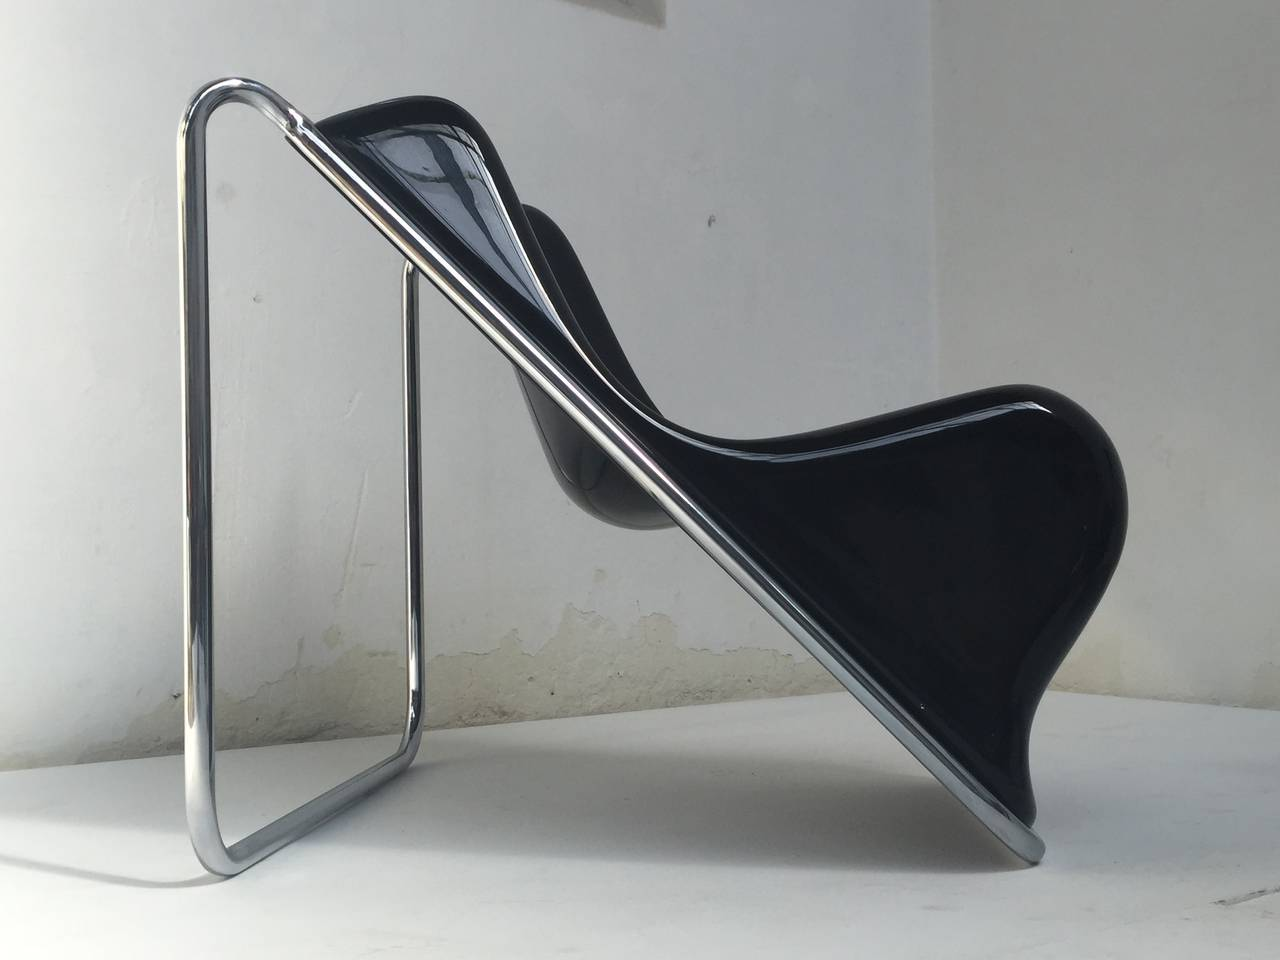 P110 Lounge Chairs by Rosselli, Partner of Gio Ponti, Exhibited at MoMA, NY 3